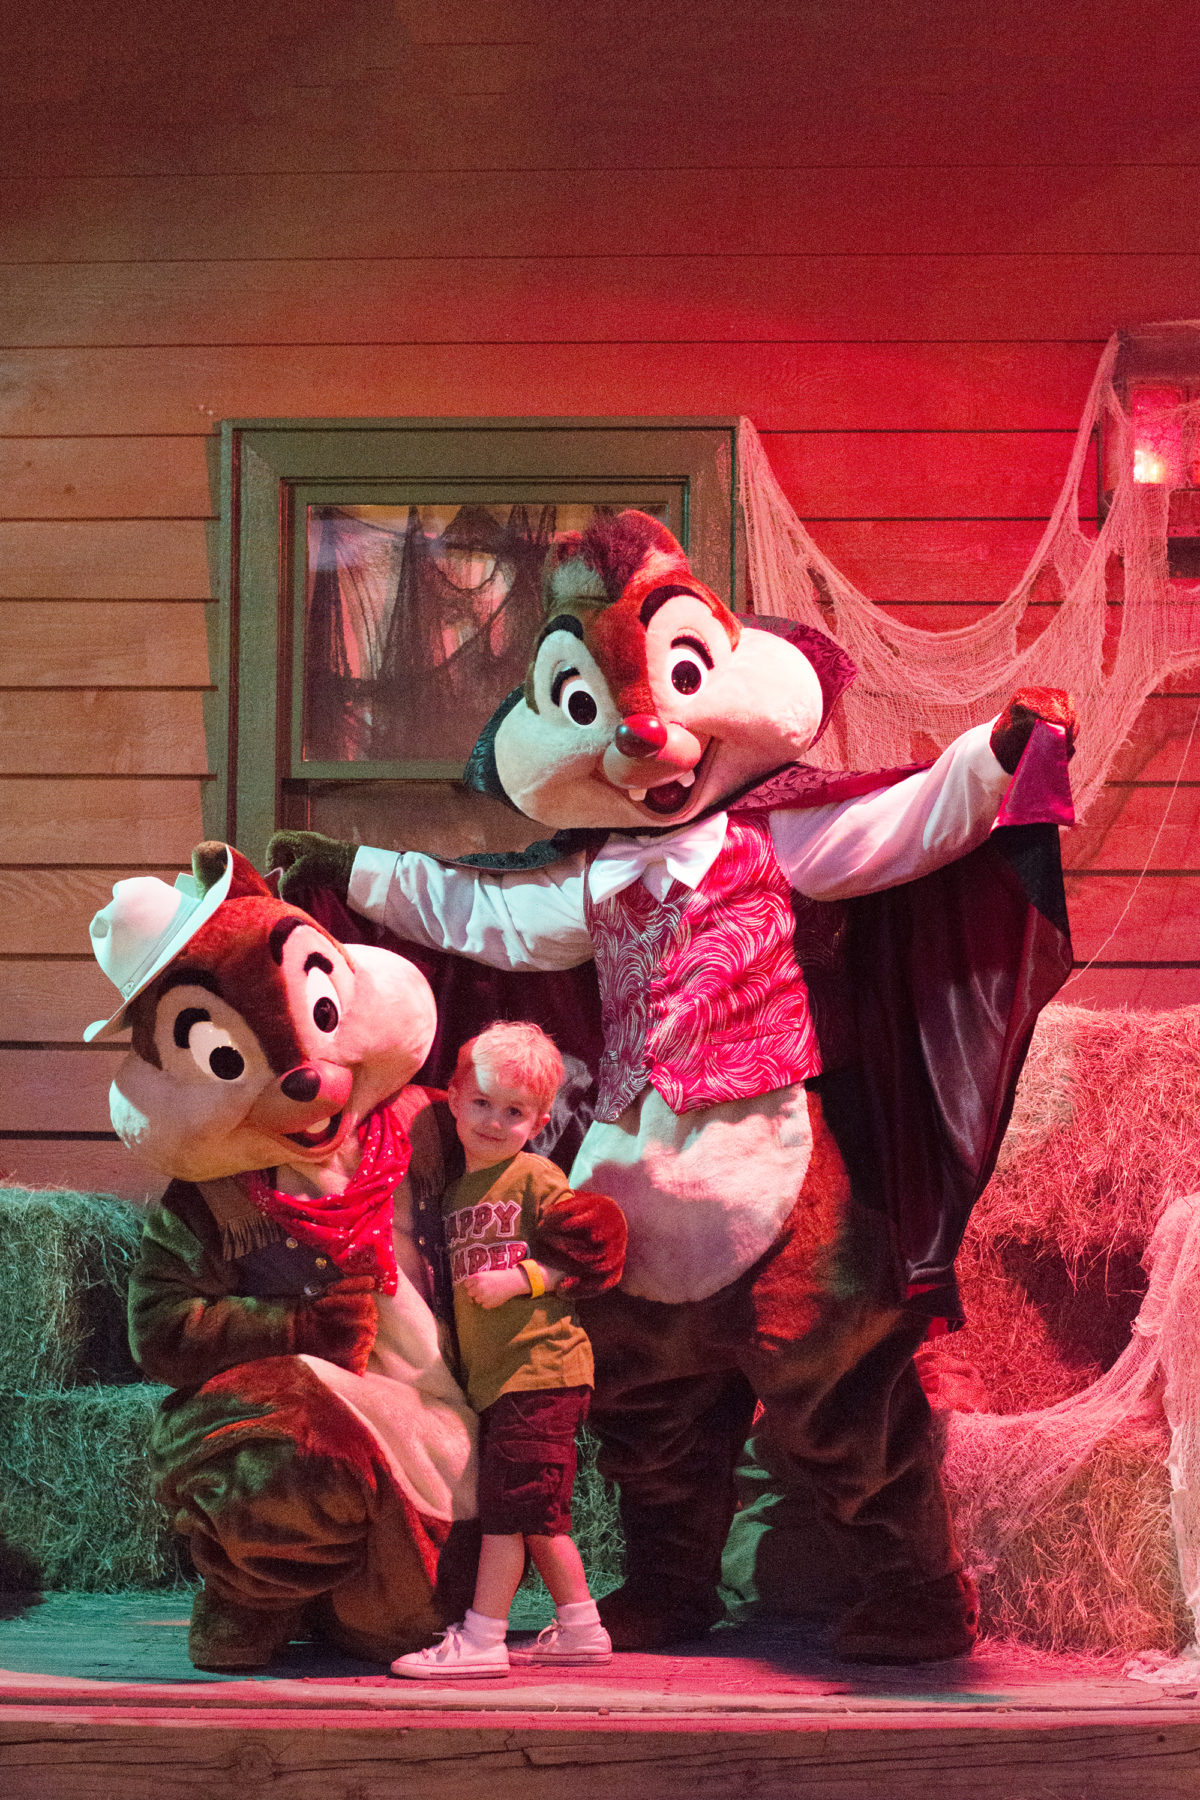 Hallowe'en fun at Chip 'N' Dale's Campfire Sing-A-Long